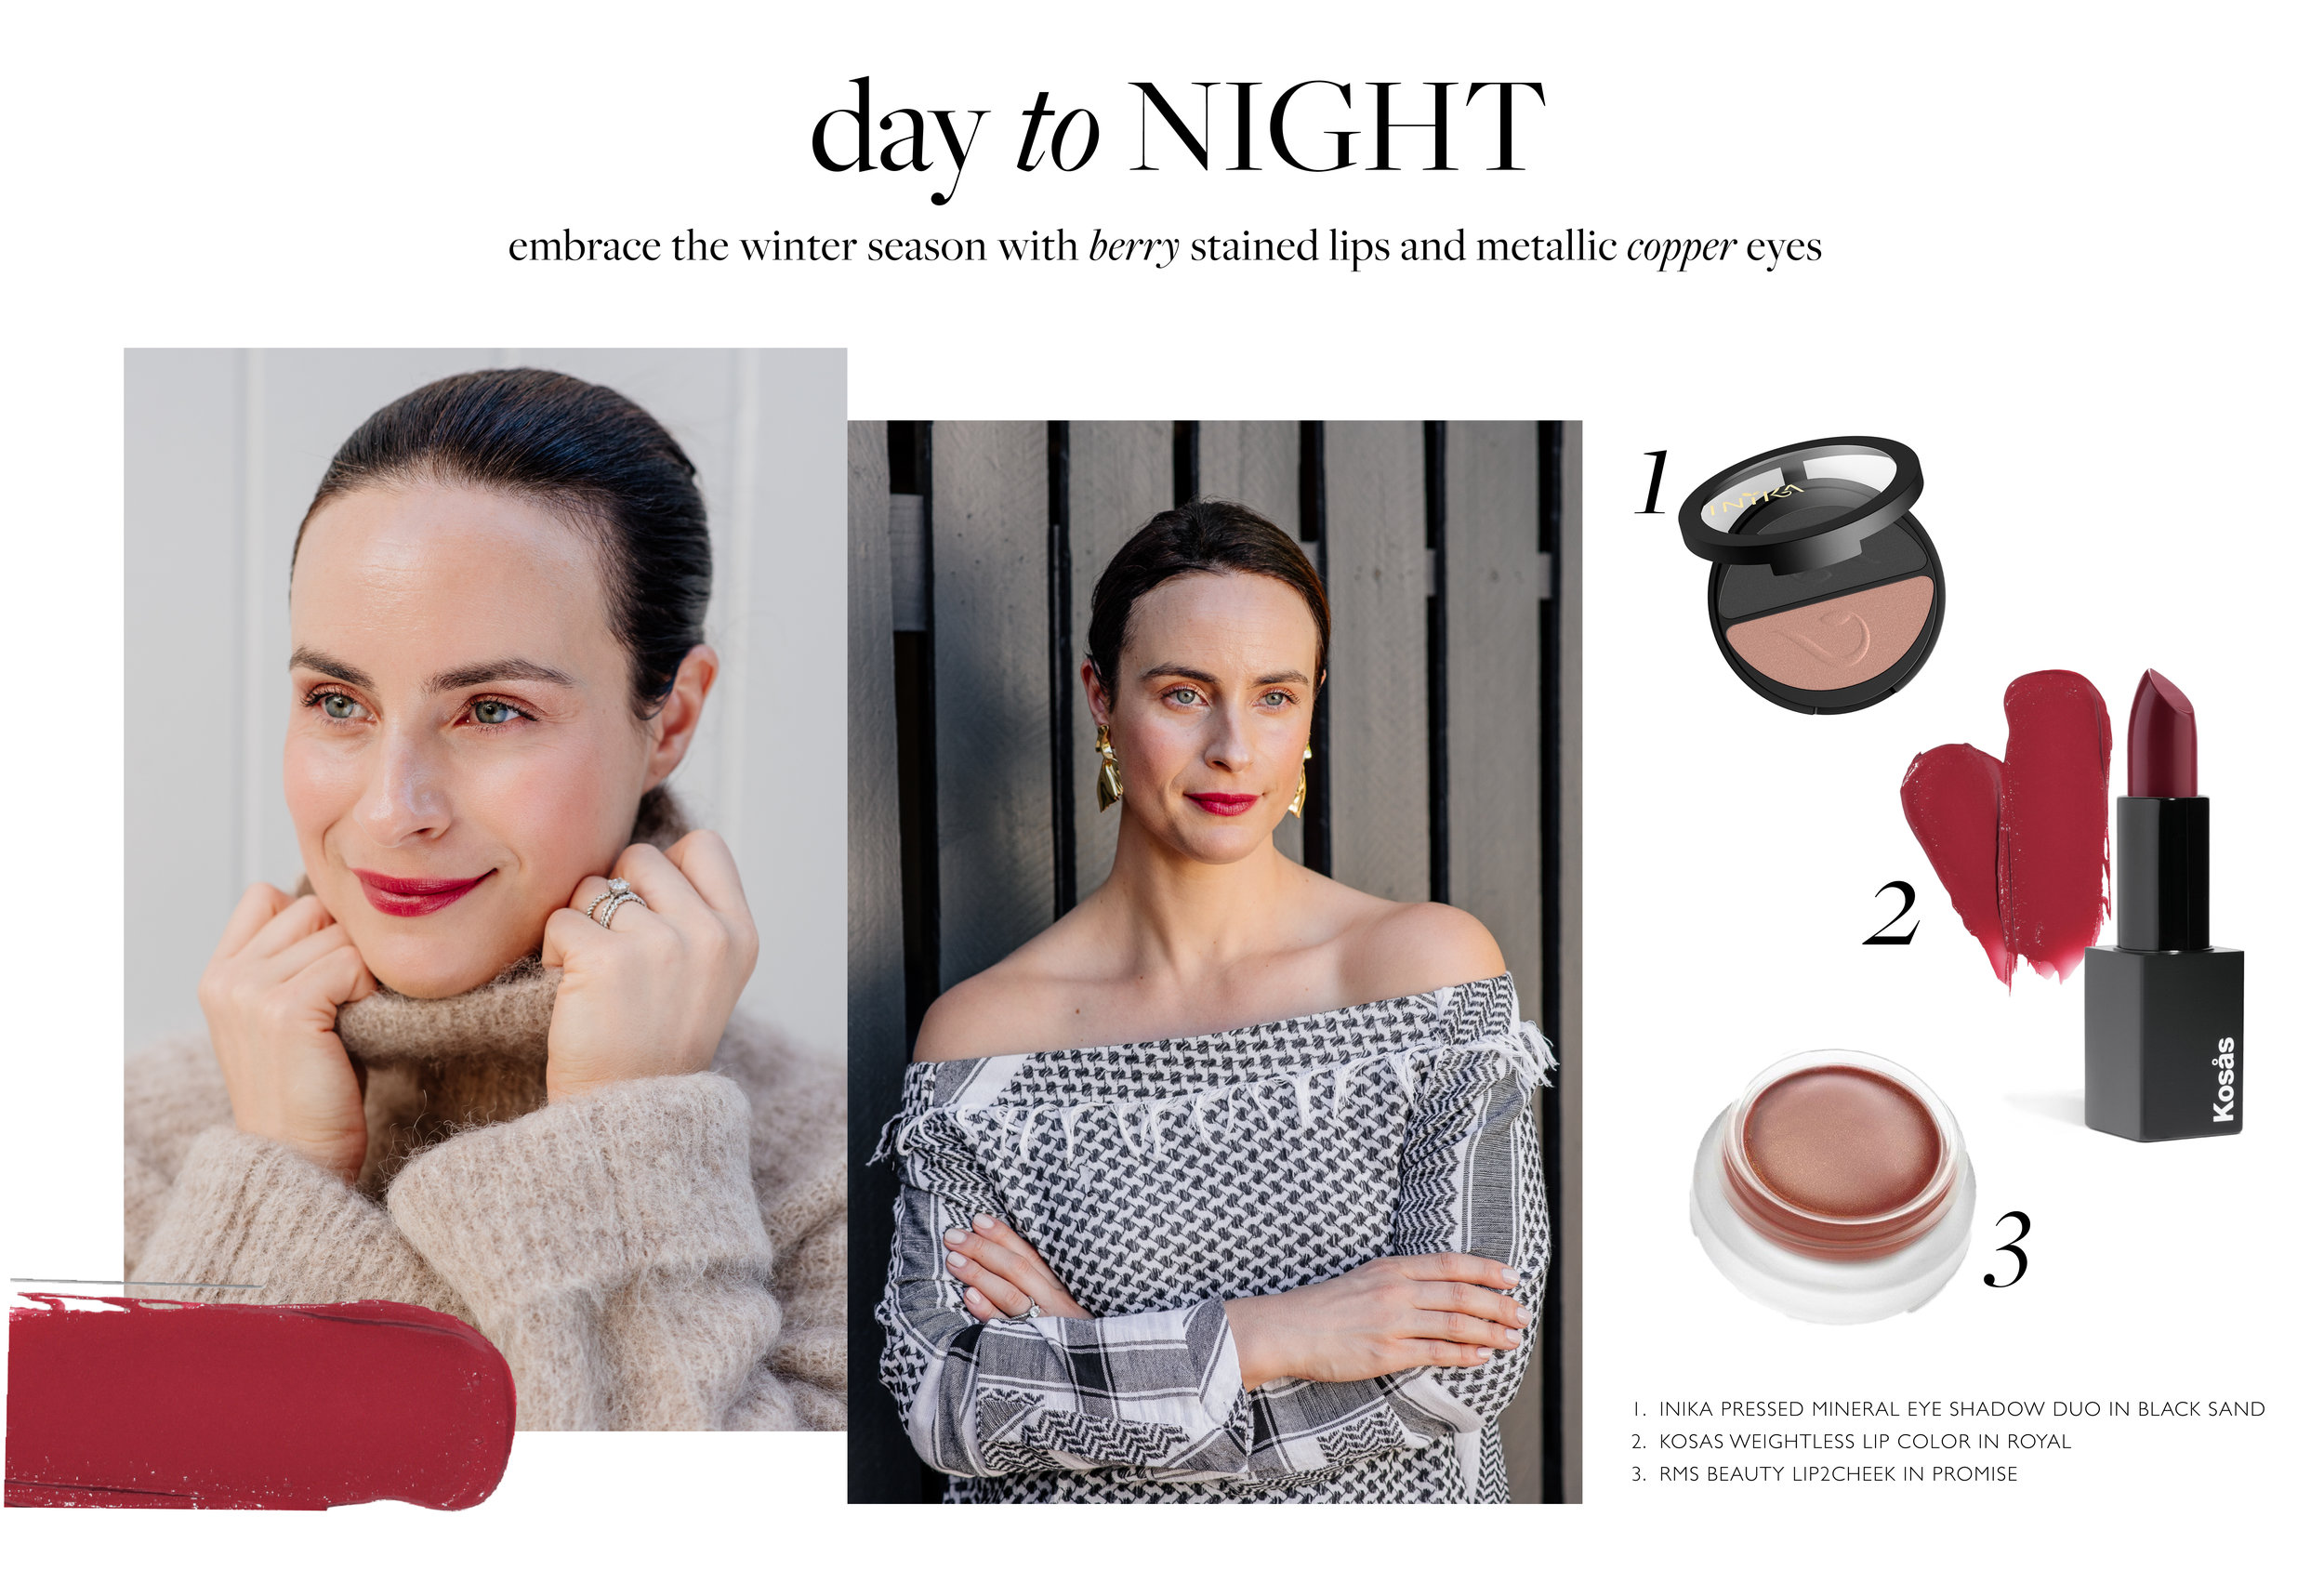 beauty natural berry lipstick day to night.jpg